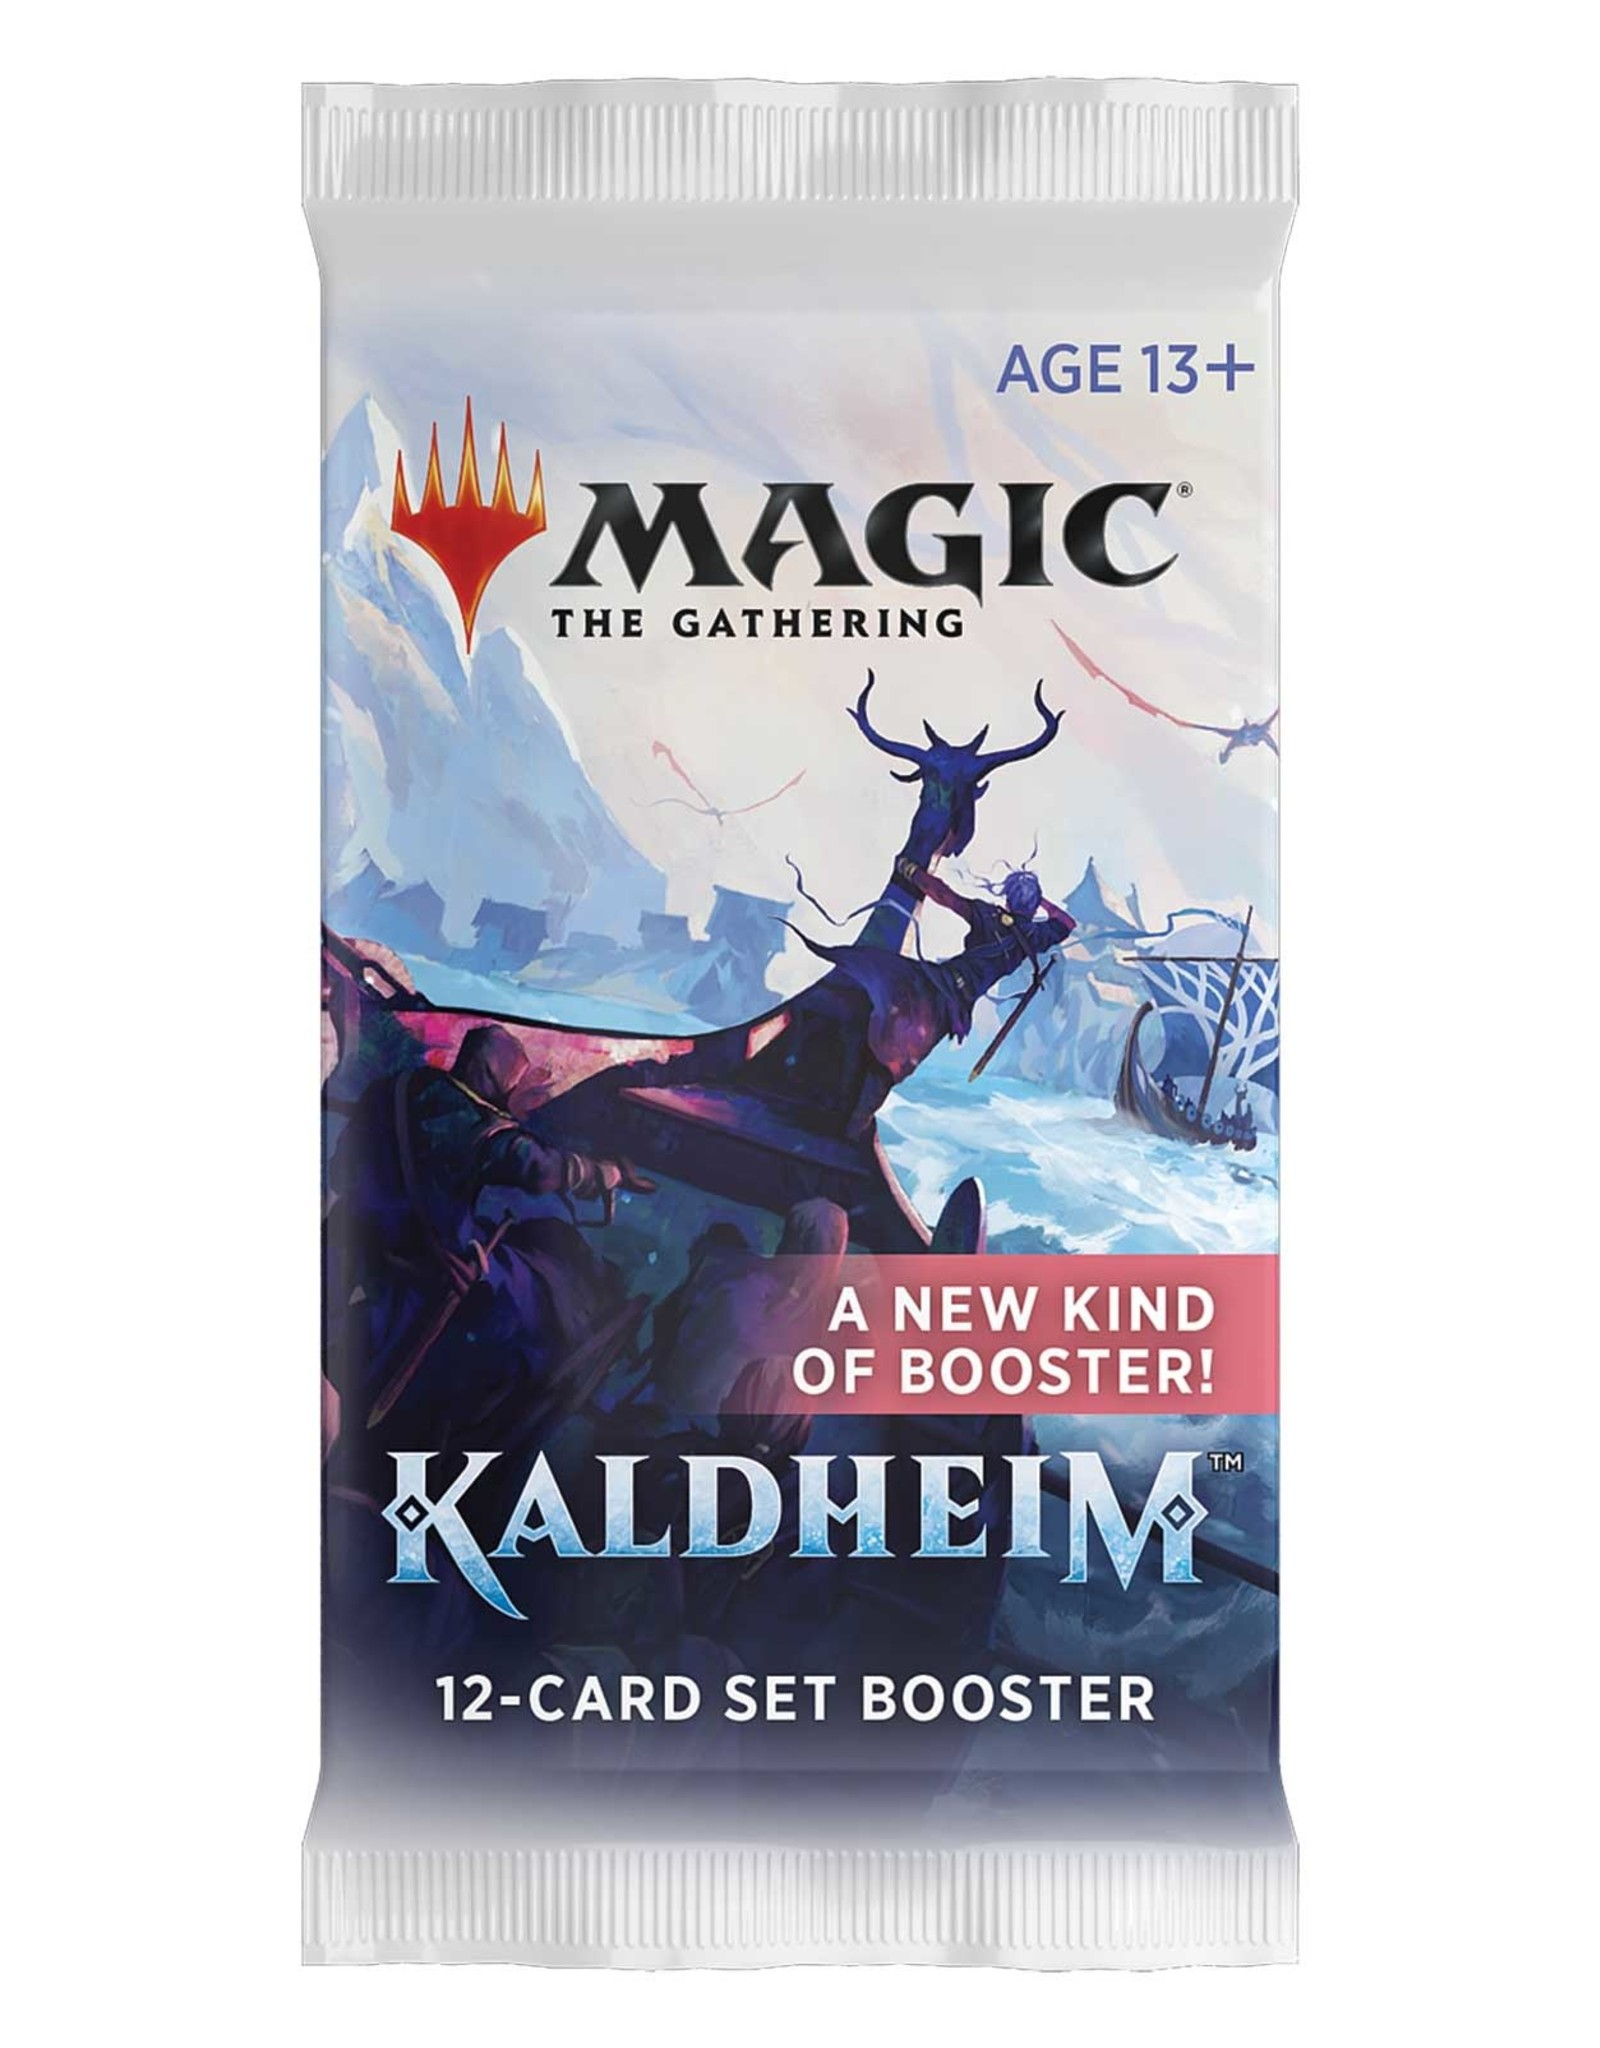 WIZARDS OF THE COAST MAGIC THE GATHERING KALDHEIM SET BOOSTER PACK